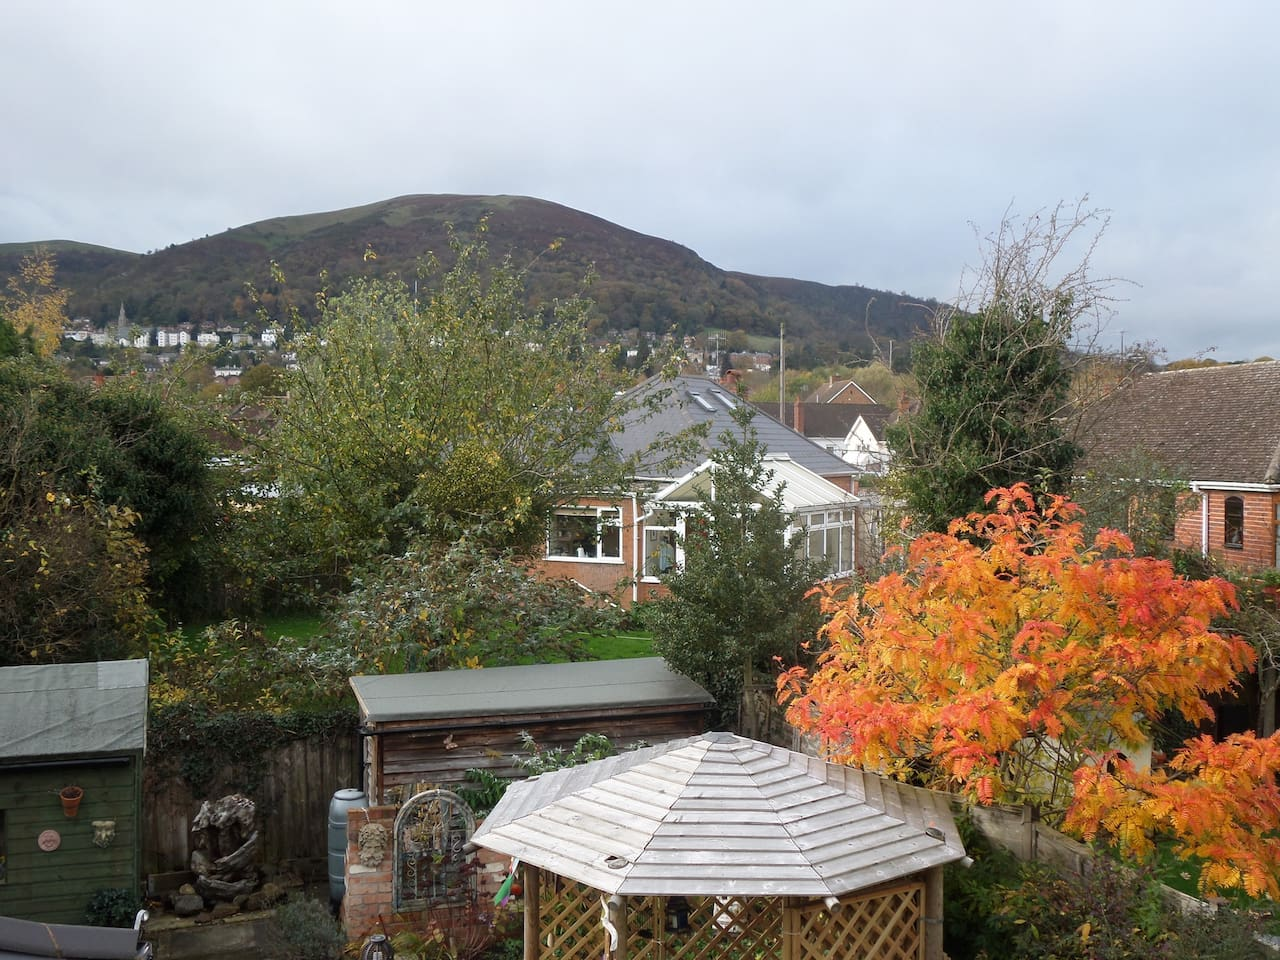 See the Malvern hills from your sitting room upstairs. This is also a therapy room where you can receive a treatment, share music, craft session or just chat, chill and drink coffee, as you wish.